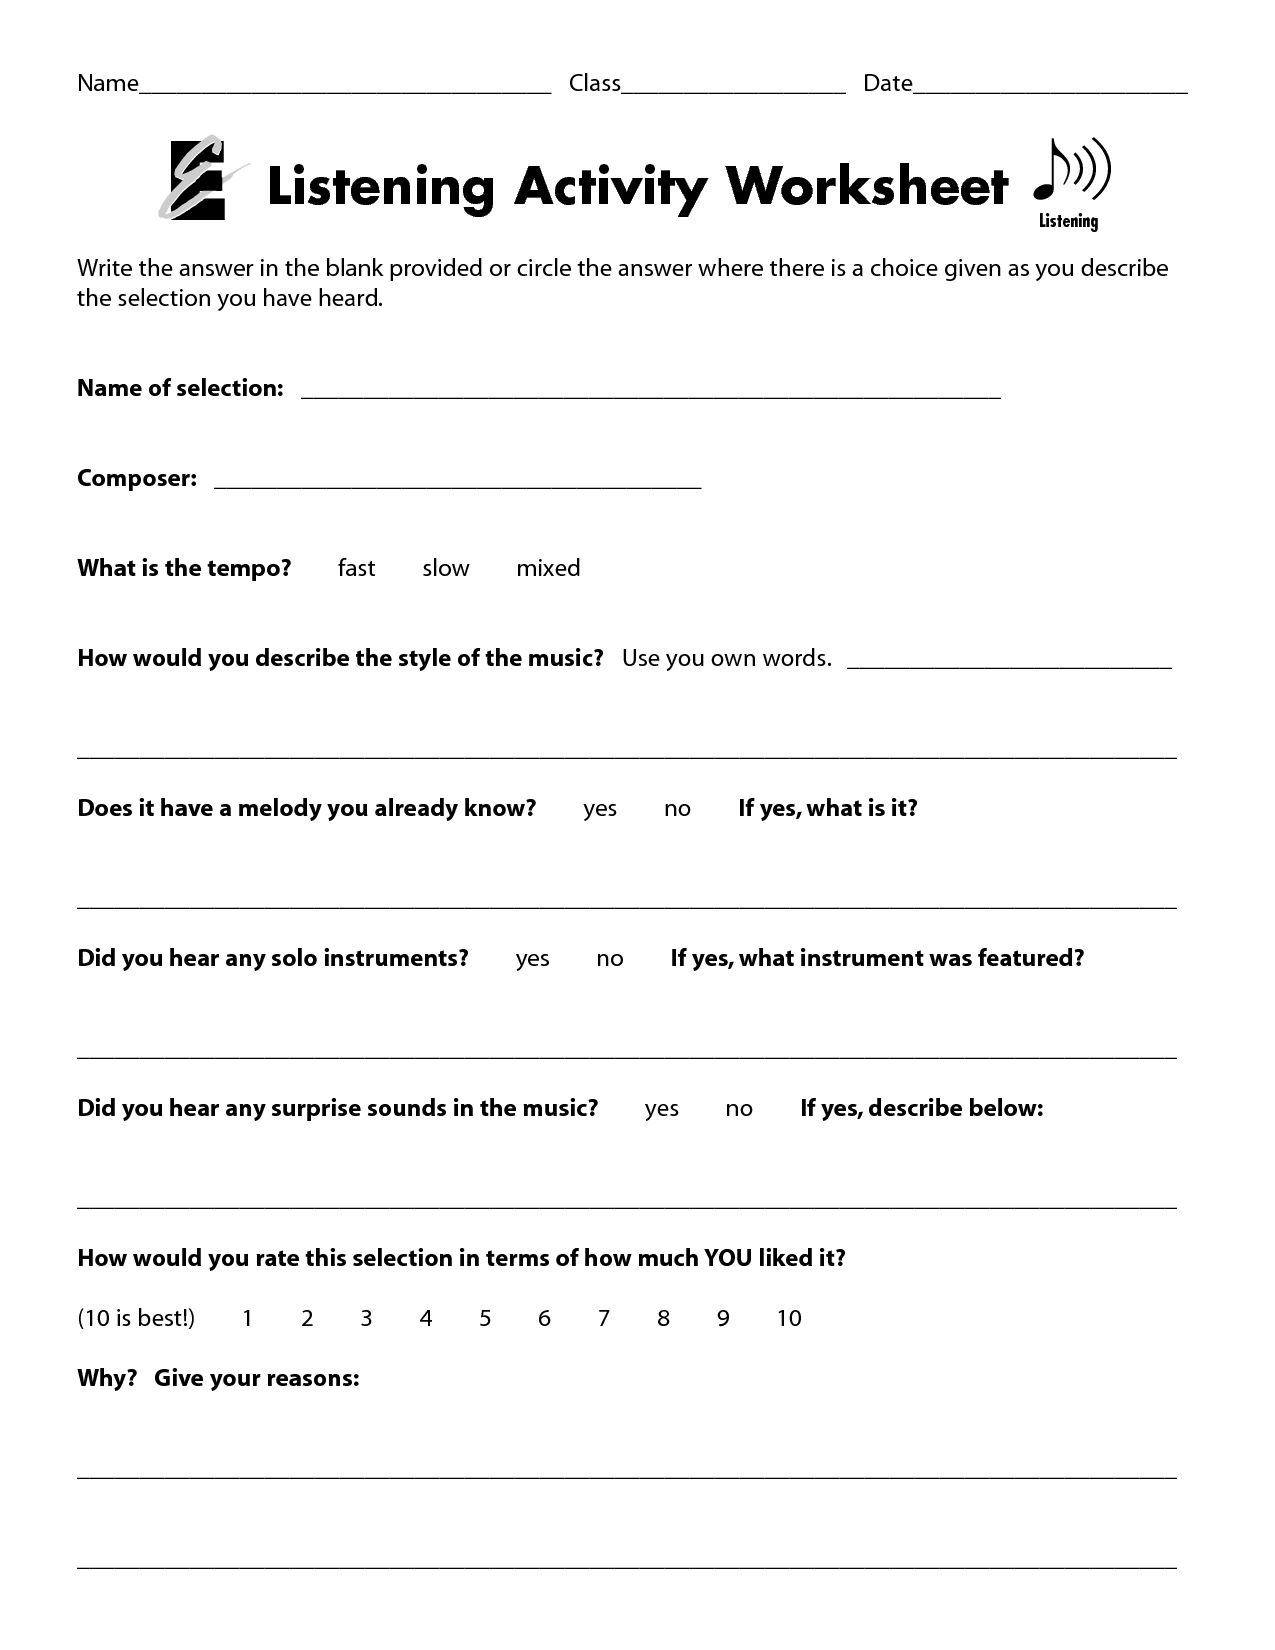 Listening Activity Worksheet